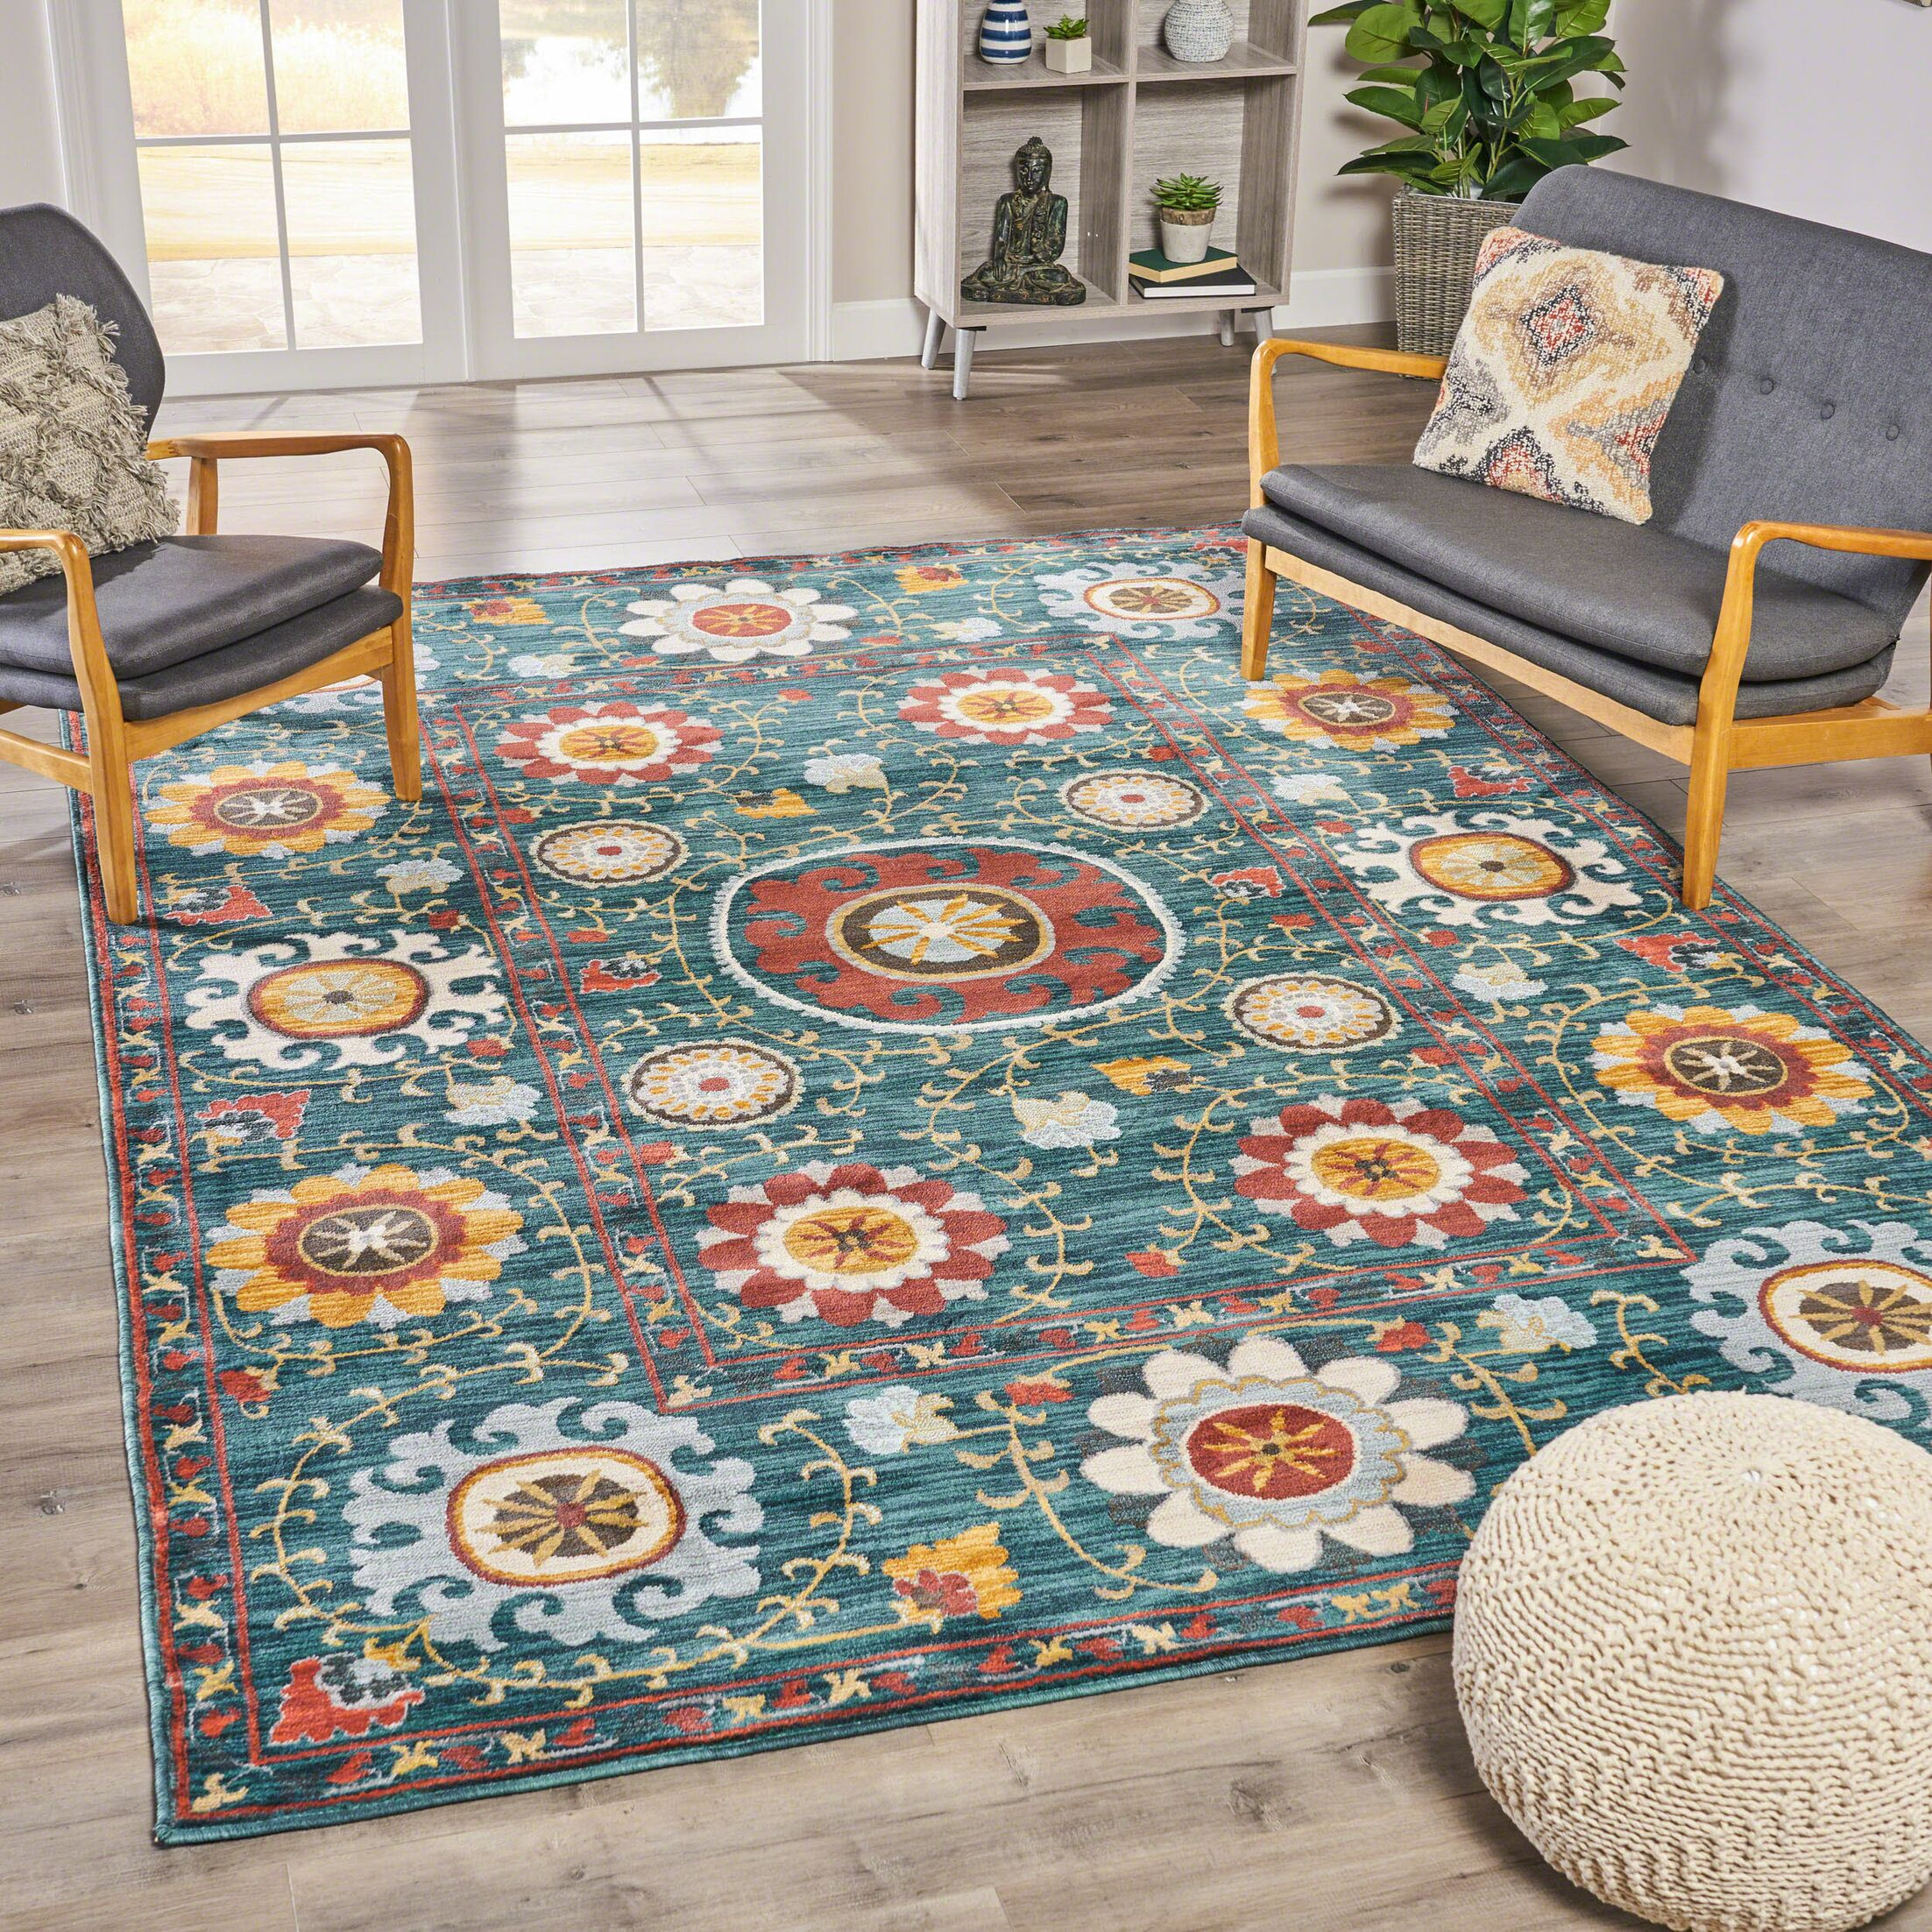 Mckenny Abstract Floral Blue Area Rug Rug Size: Rectangle 5'3